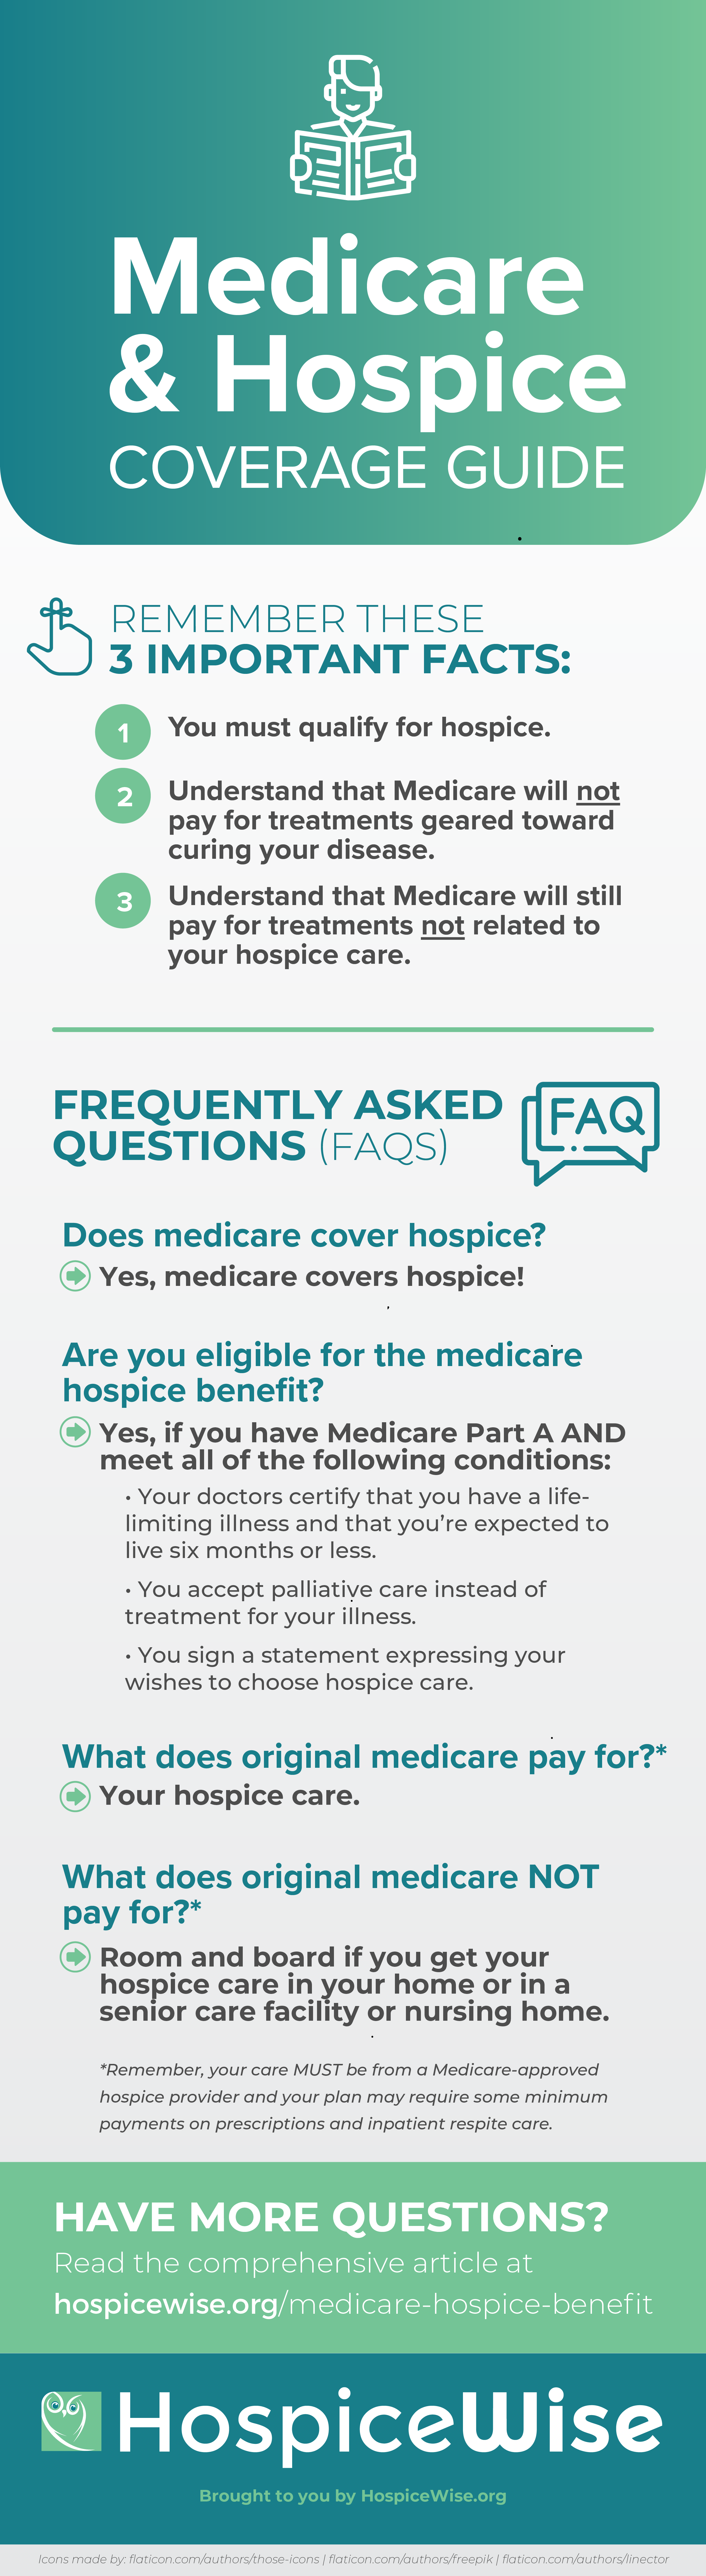 medicare and hospice benefit coverage guide